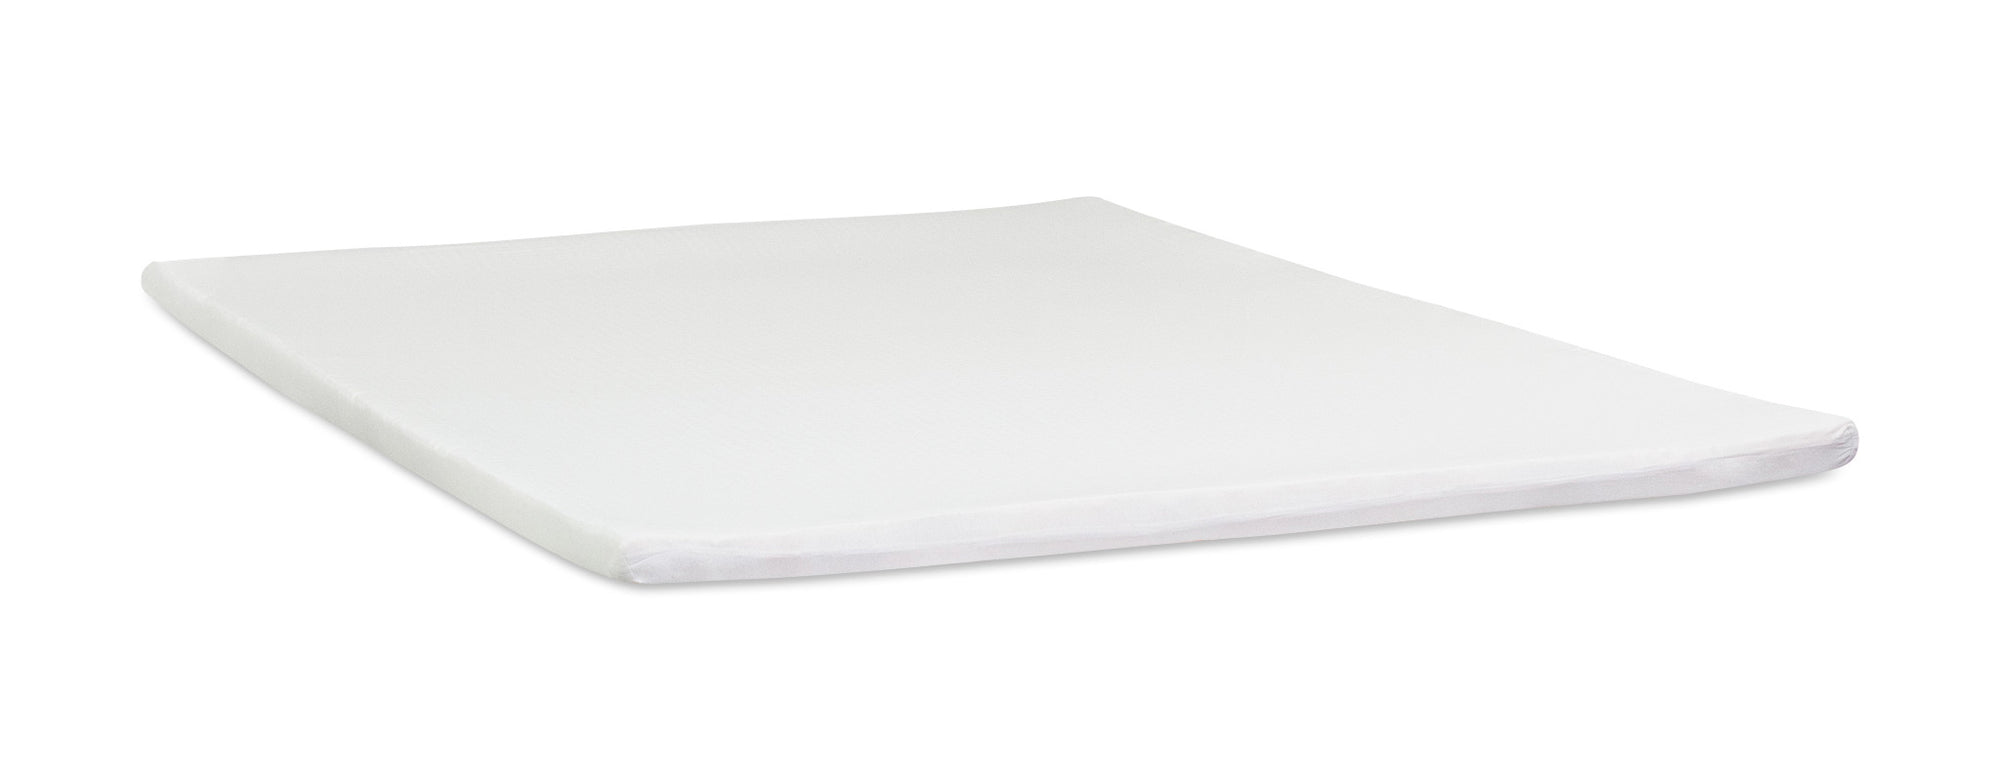 "2"" Organic Latex Mattress Topper"